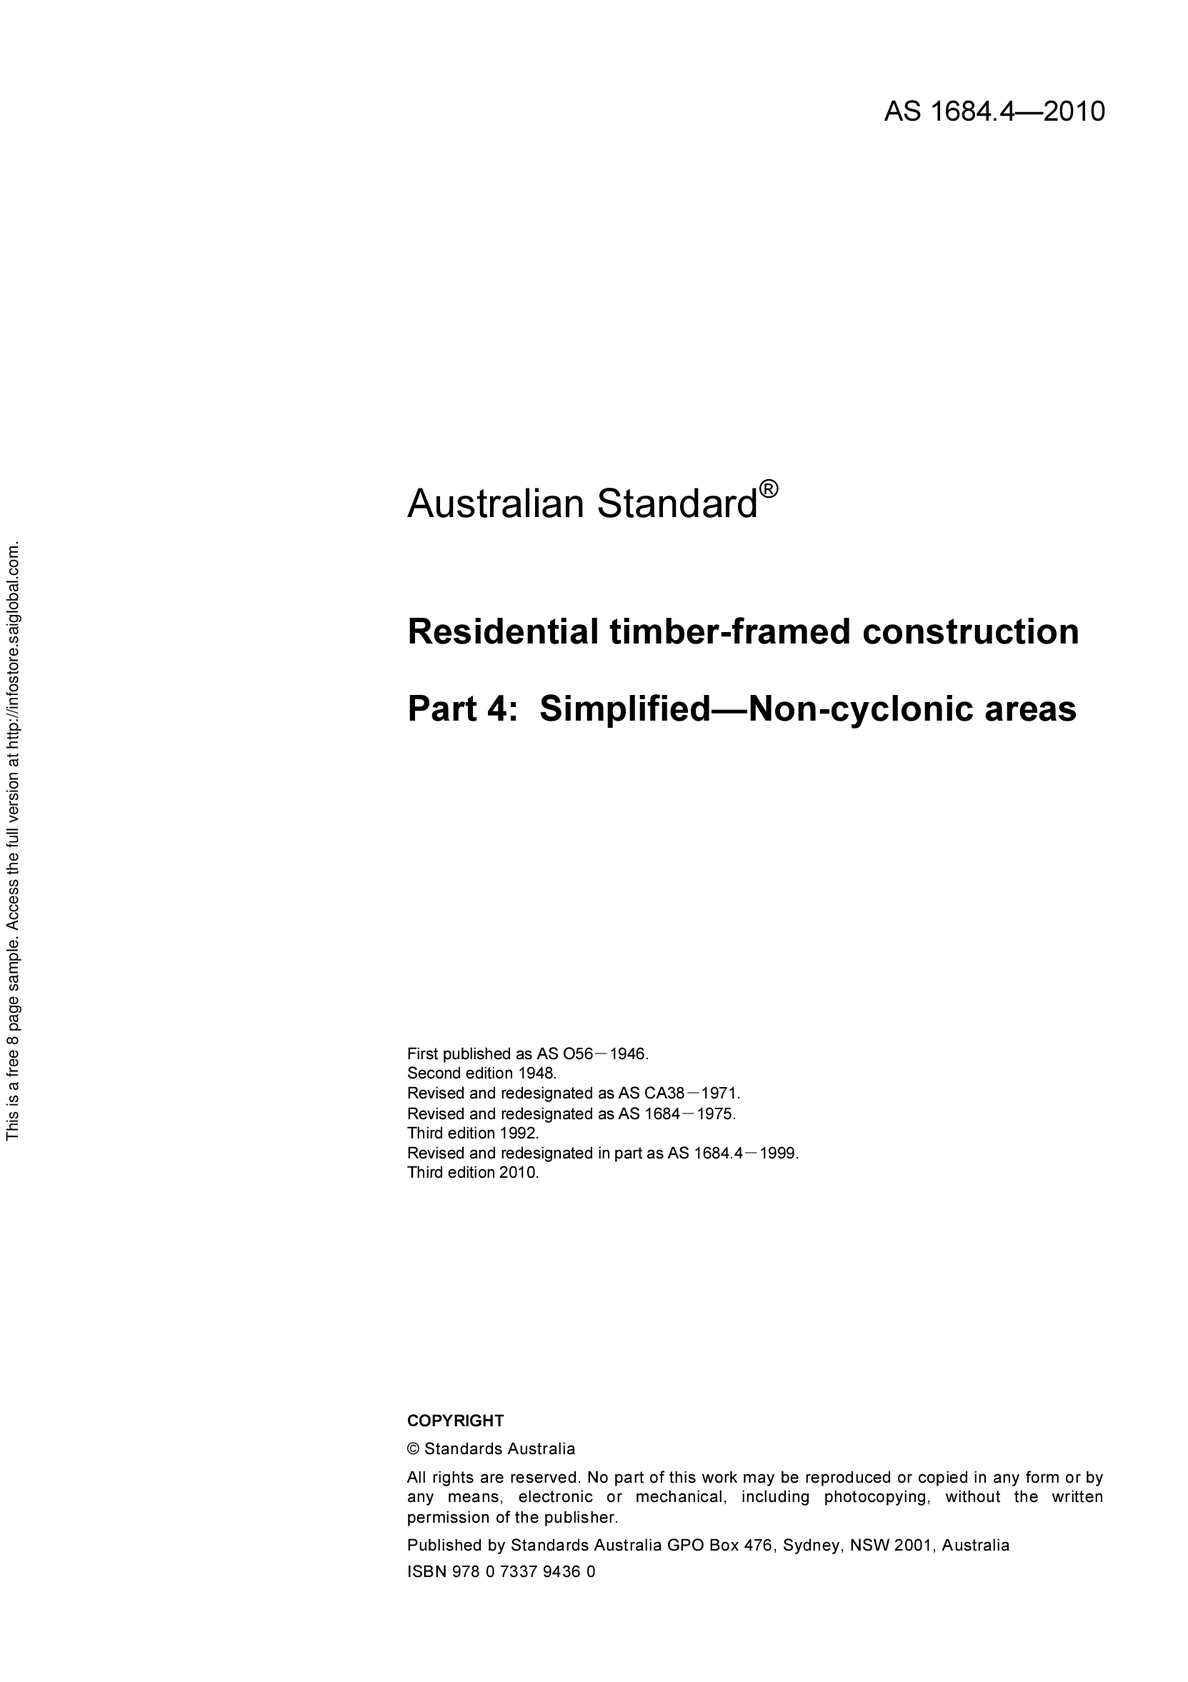 Nsw Timber Framing Manual Pdf | Amtframe.org